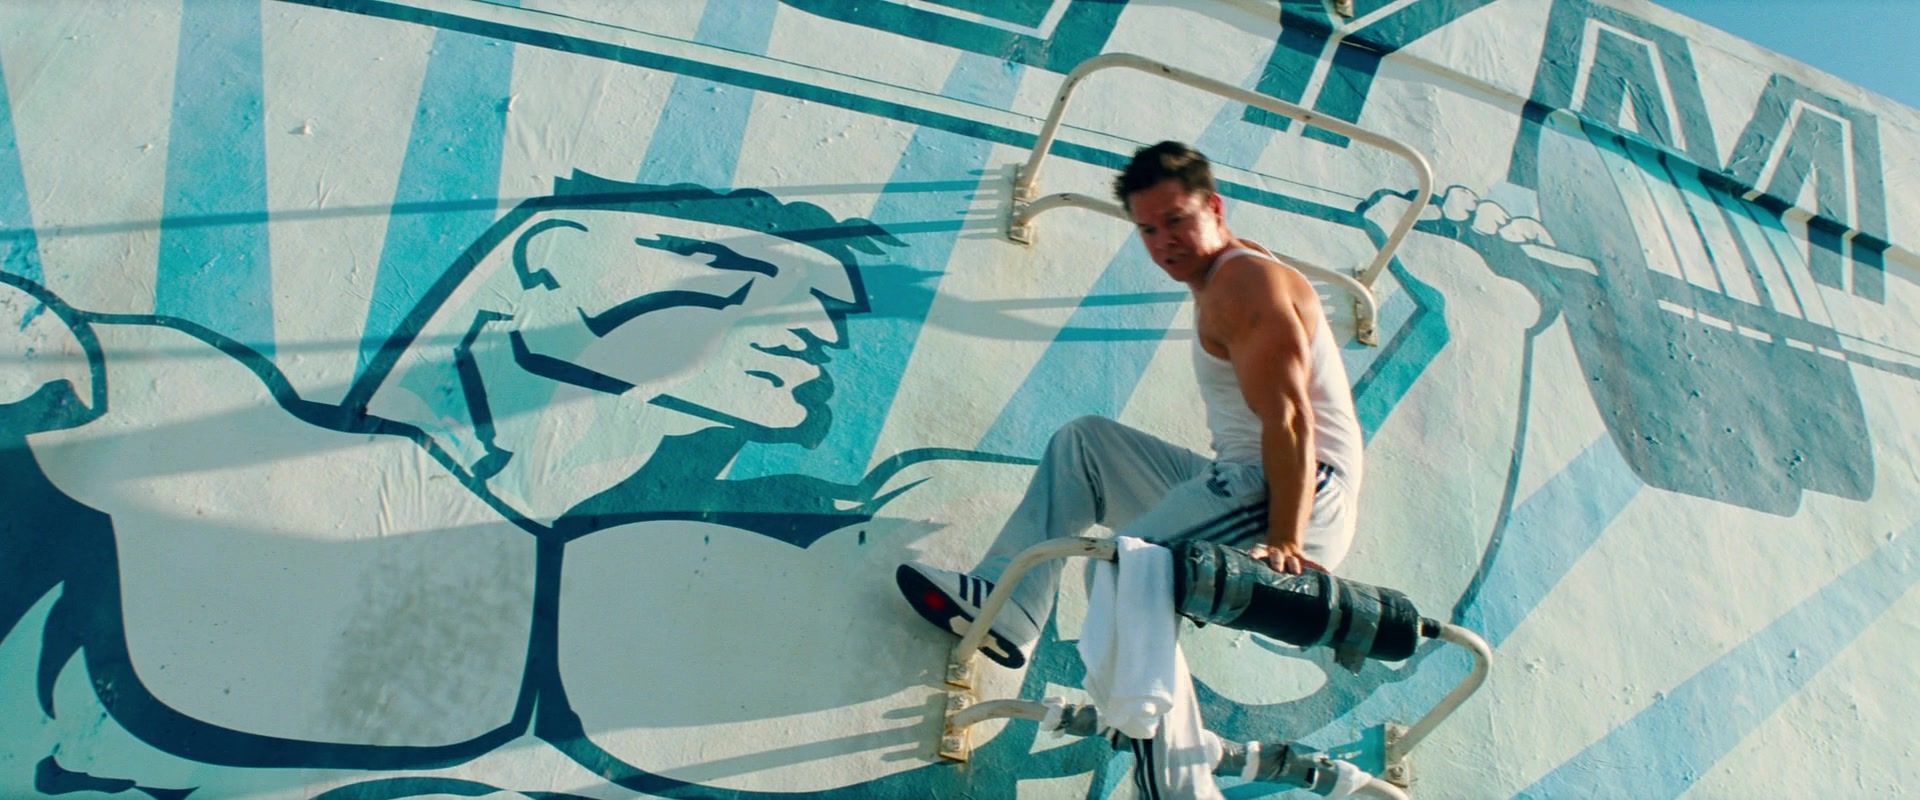 Adidas Pants And Shoes Worn By Mark Wahlberg In Pain